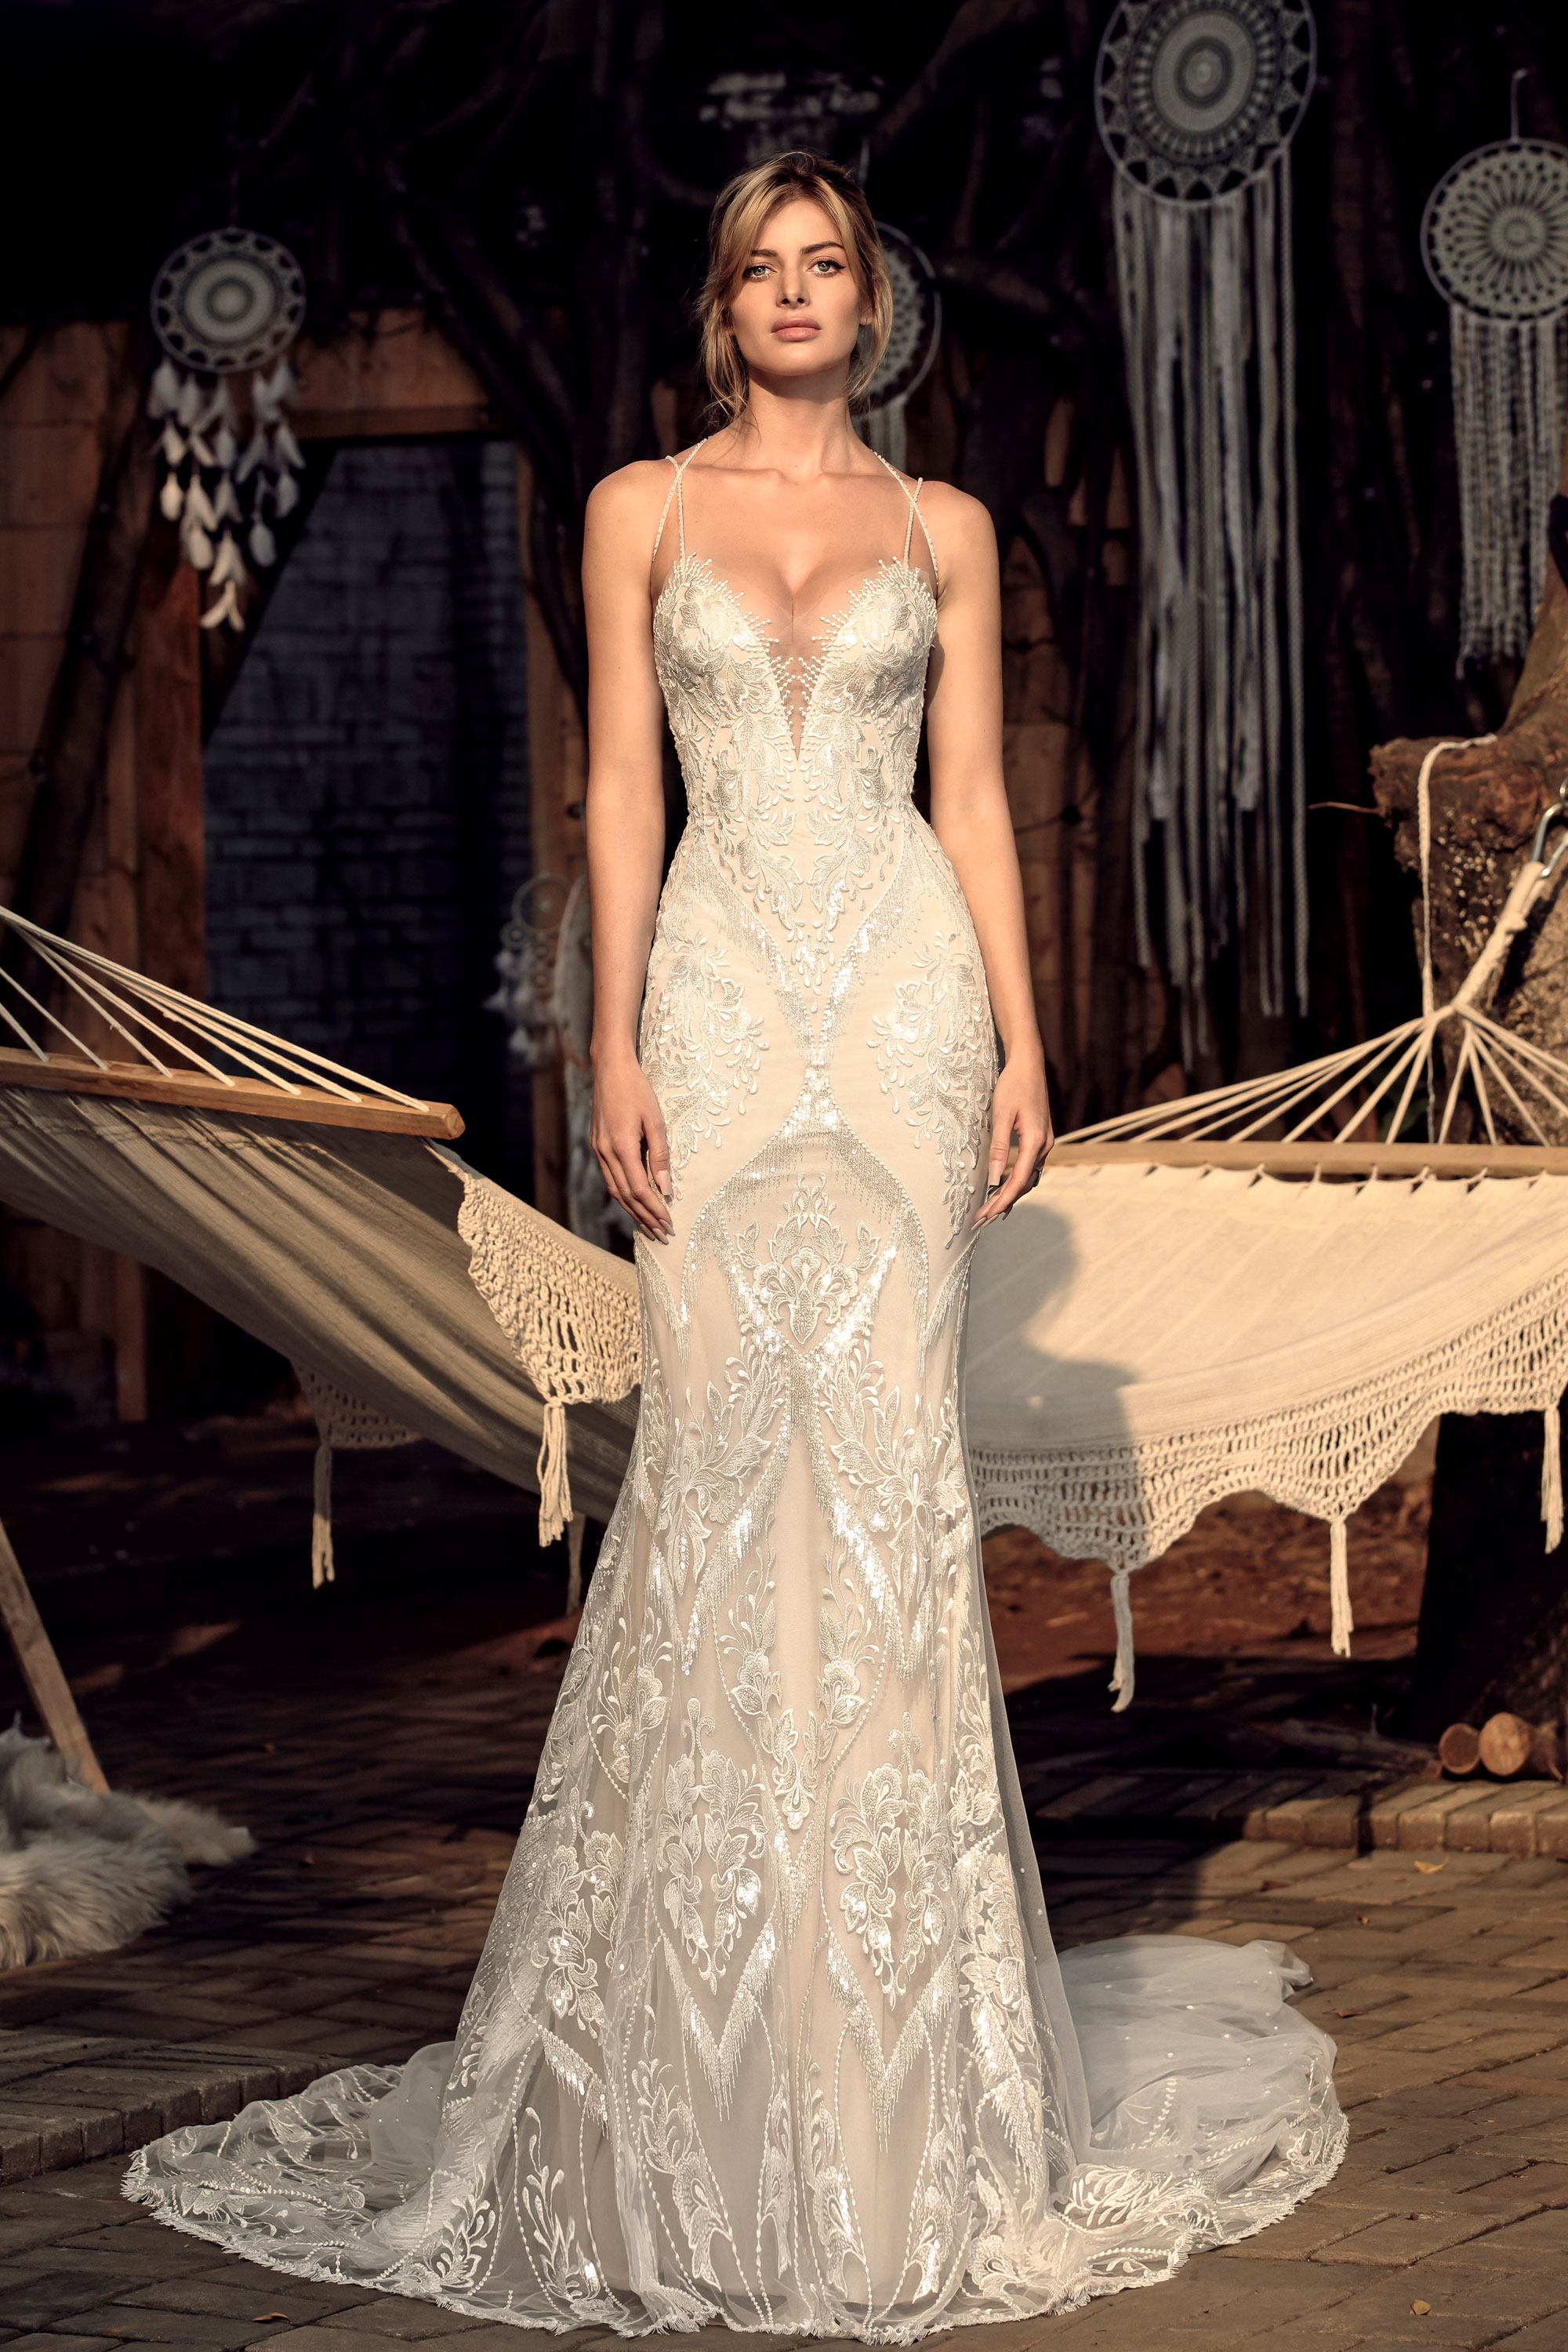 Chic Nostalgia designer wedding dress boho style